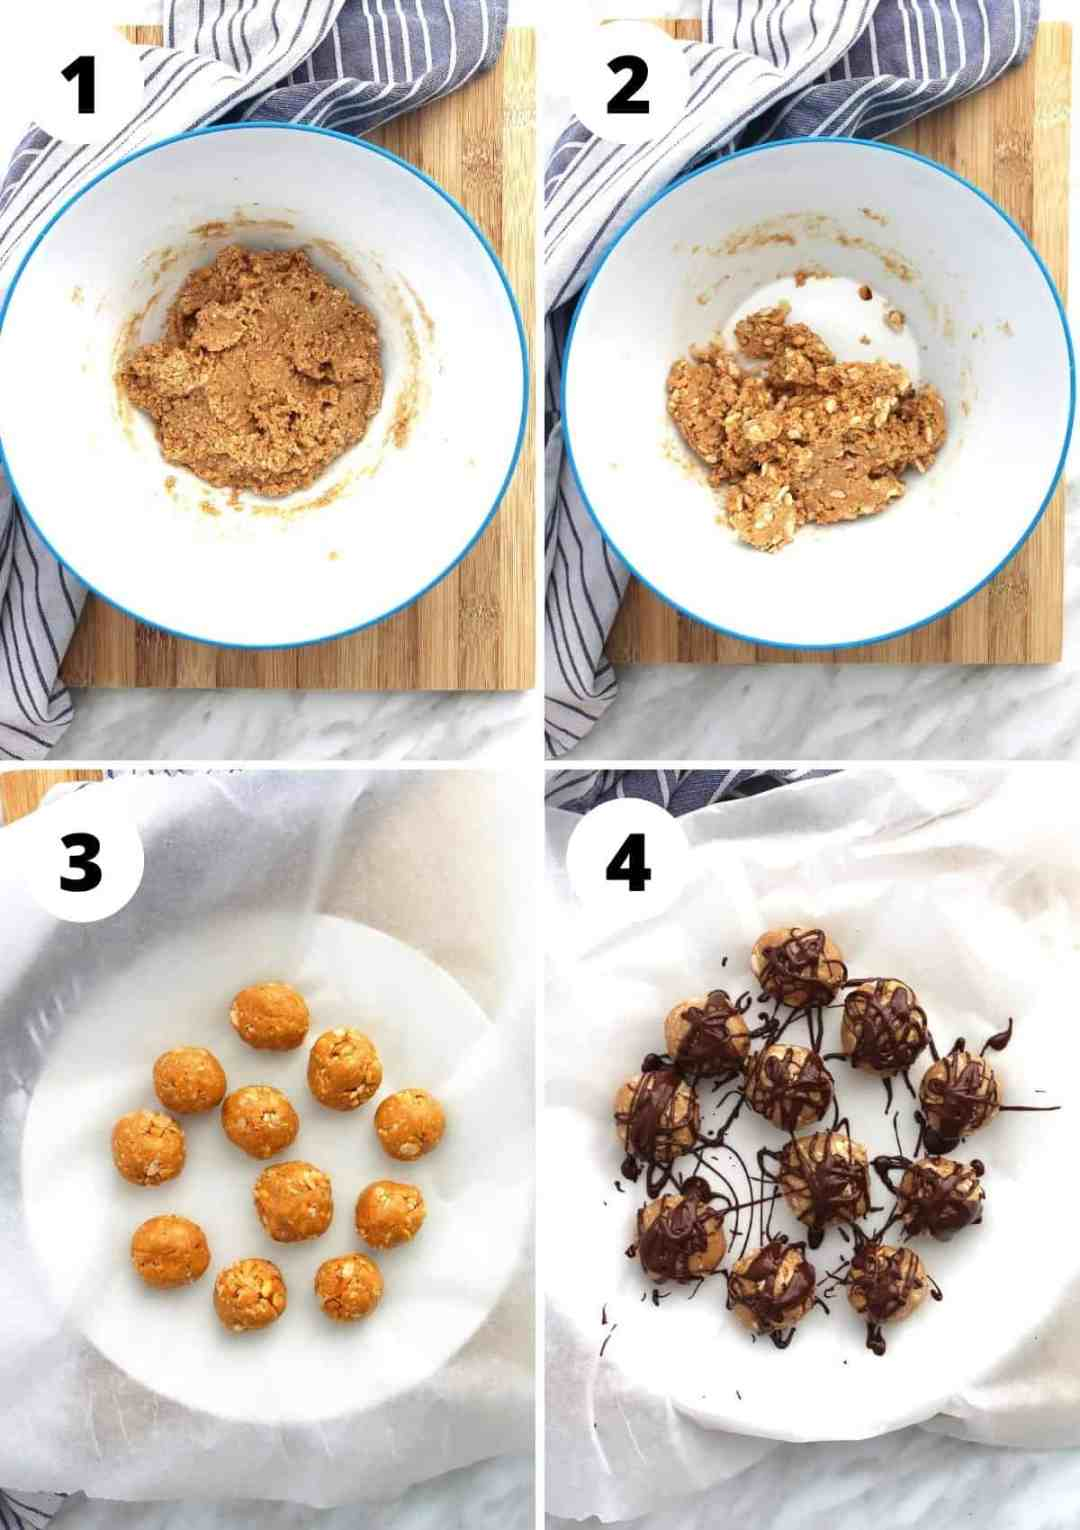 Four photos to show how to make the peanut butter bites